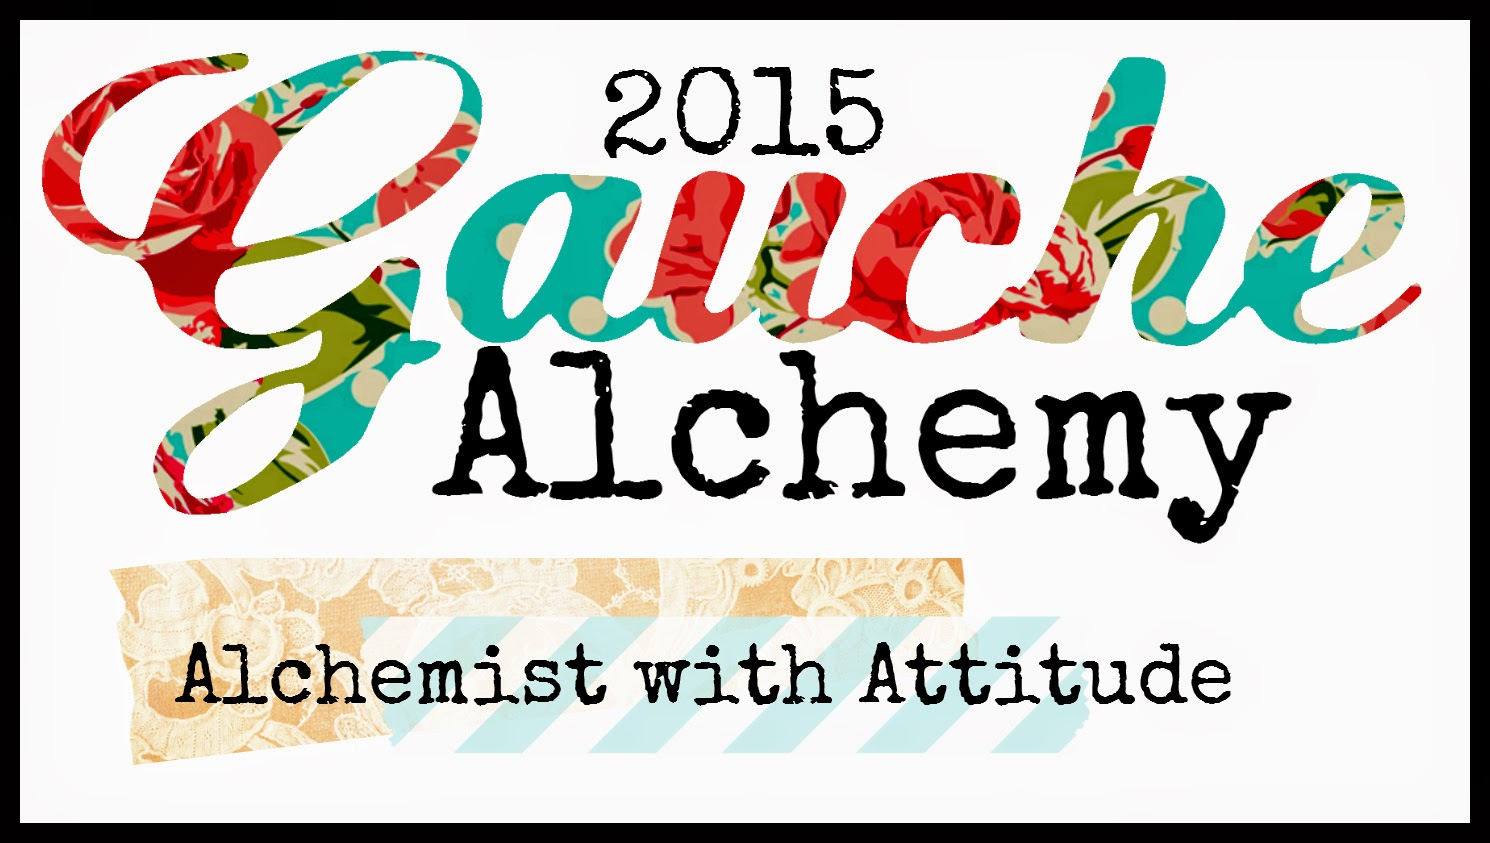 I design for Gauche Alchemy!